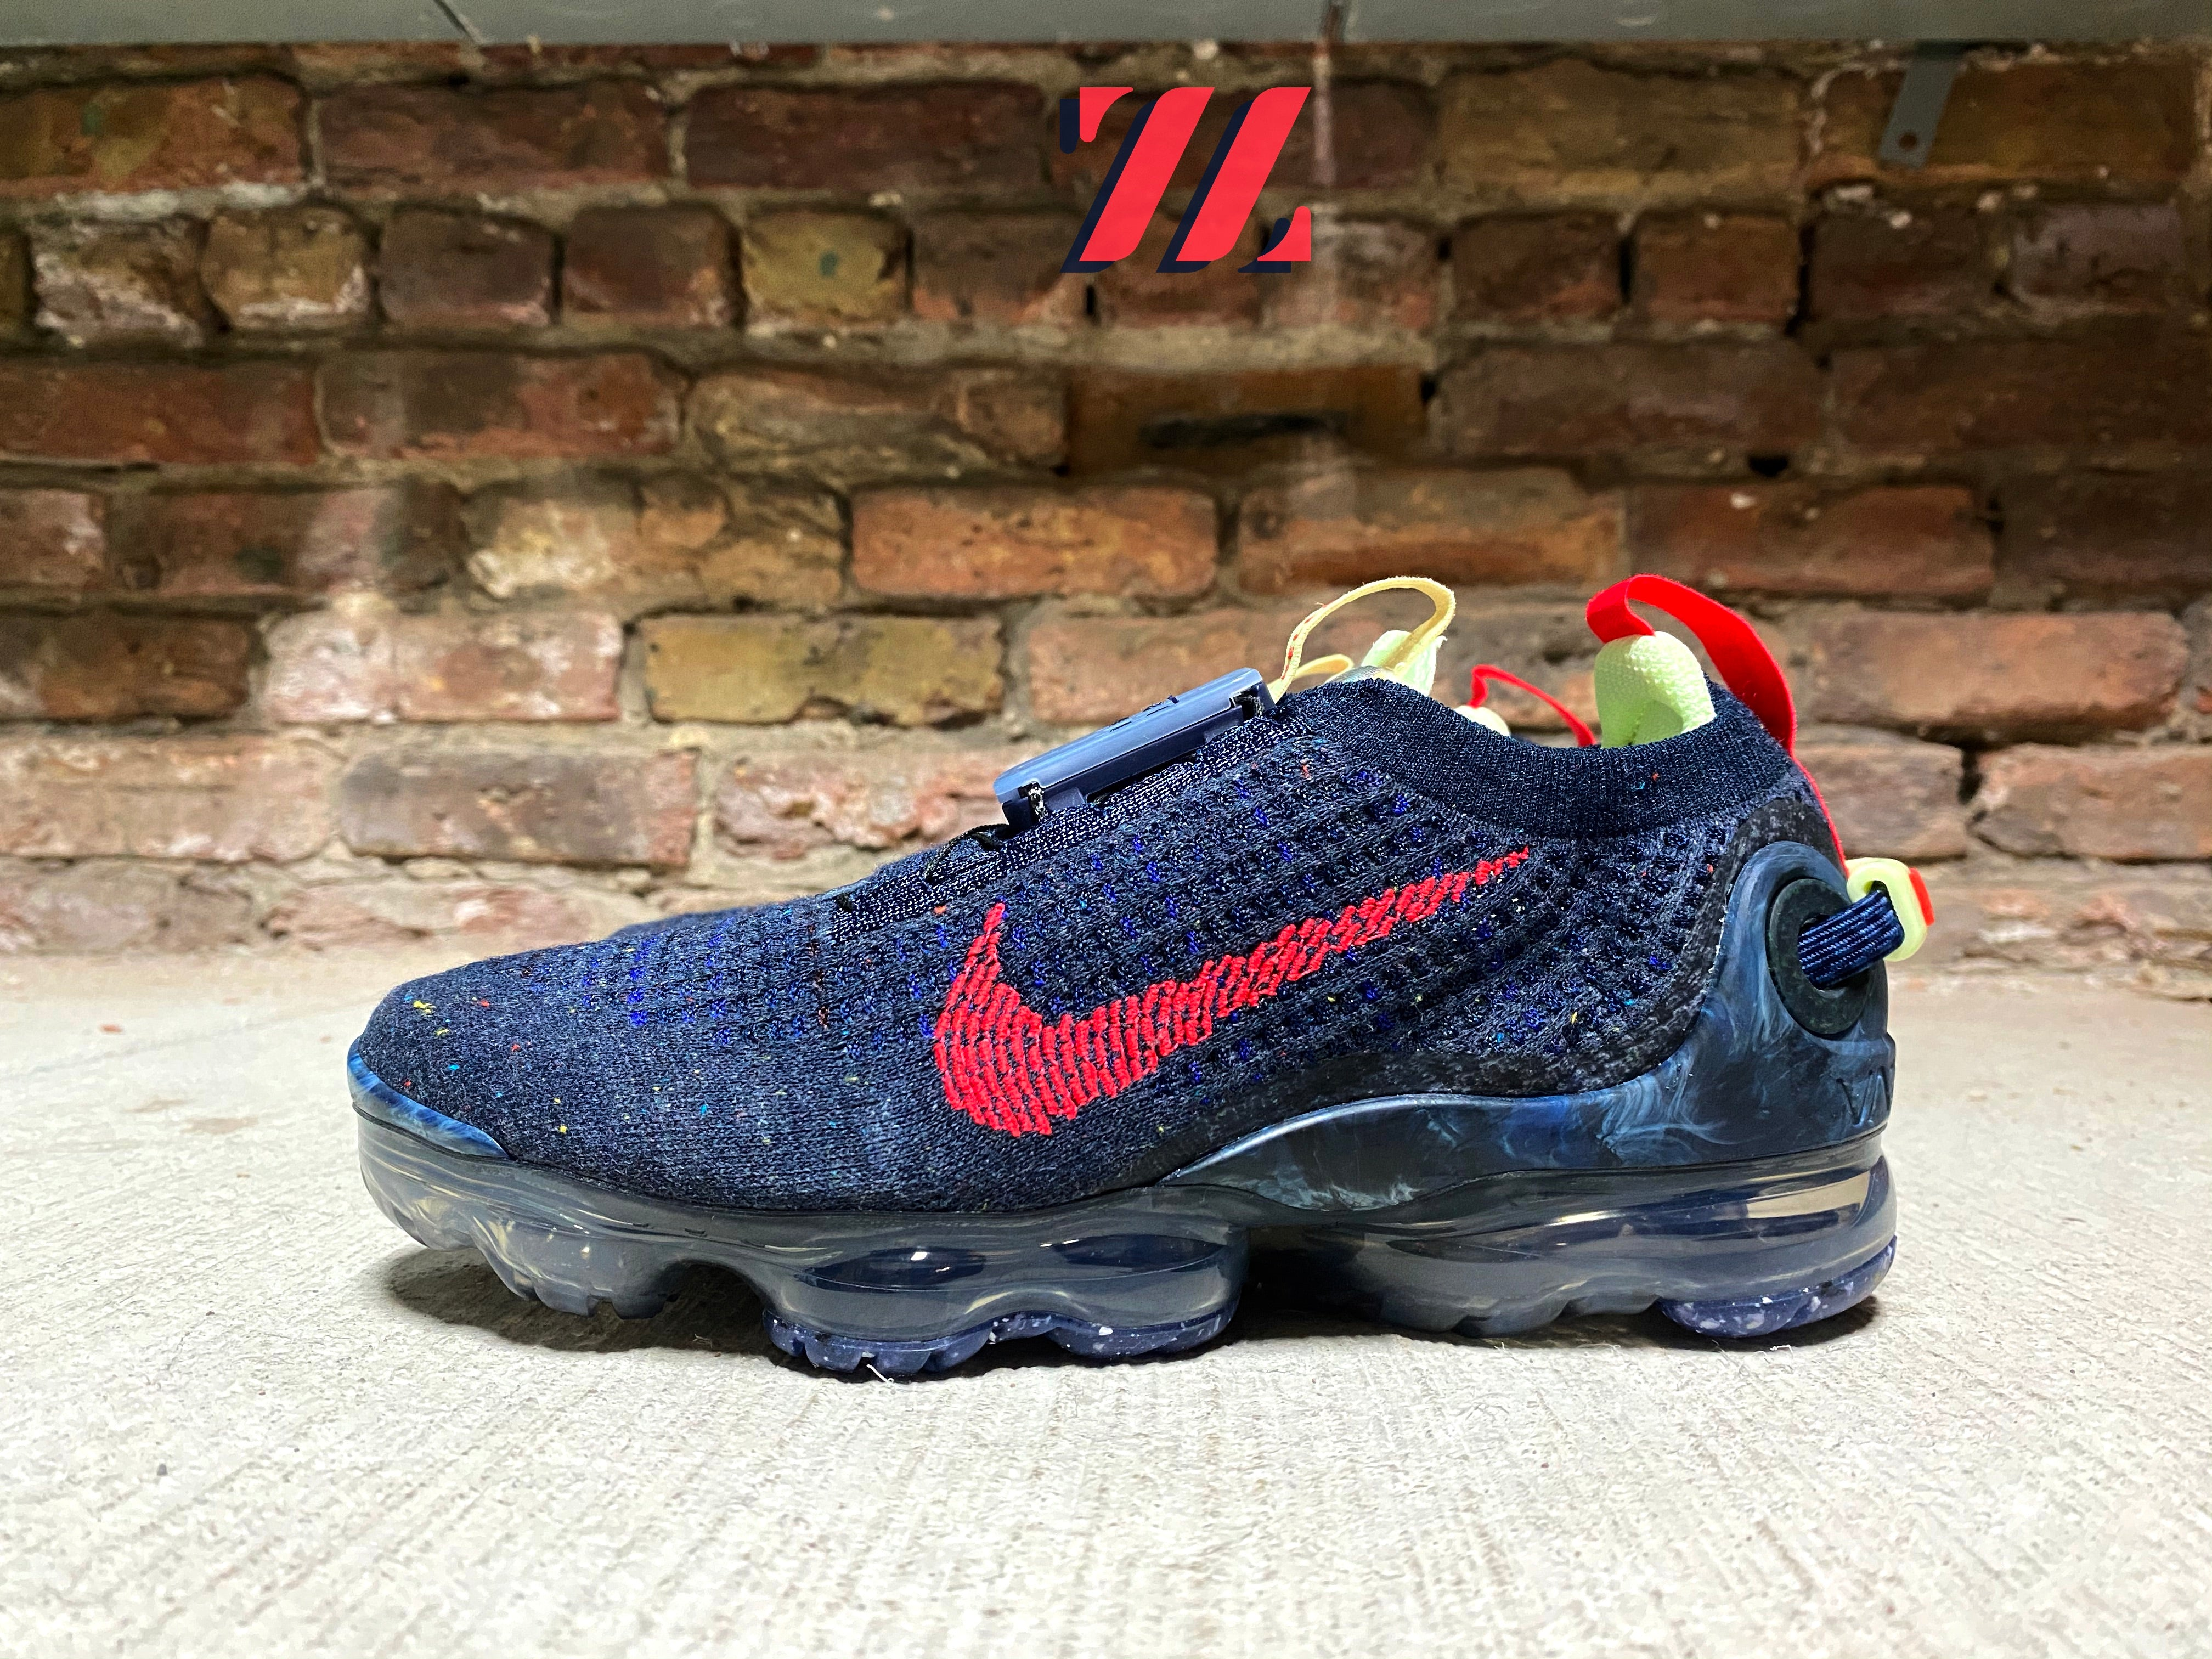 Men's Nike Air Vapormax 2020 FlyKnit